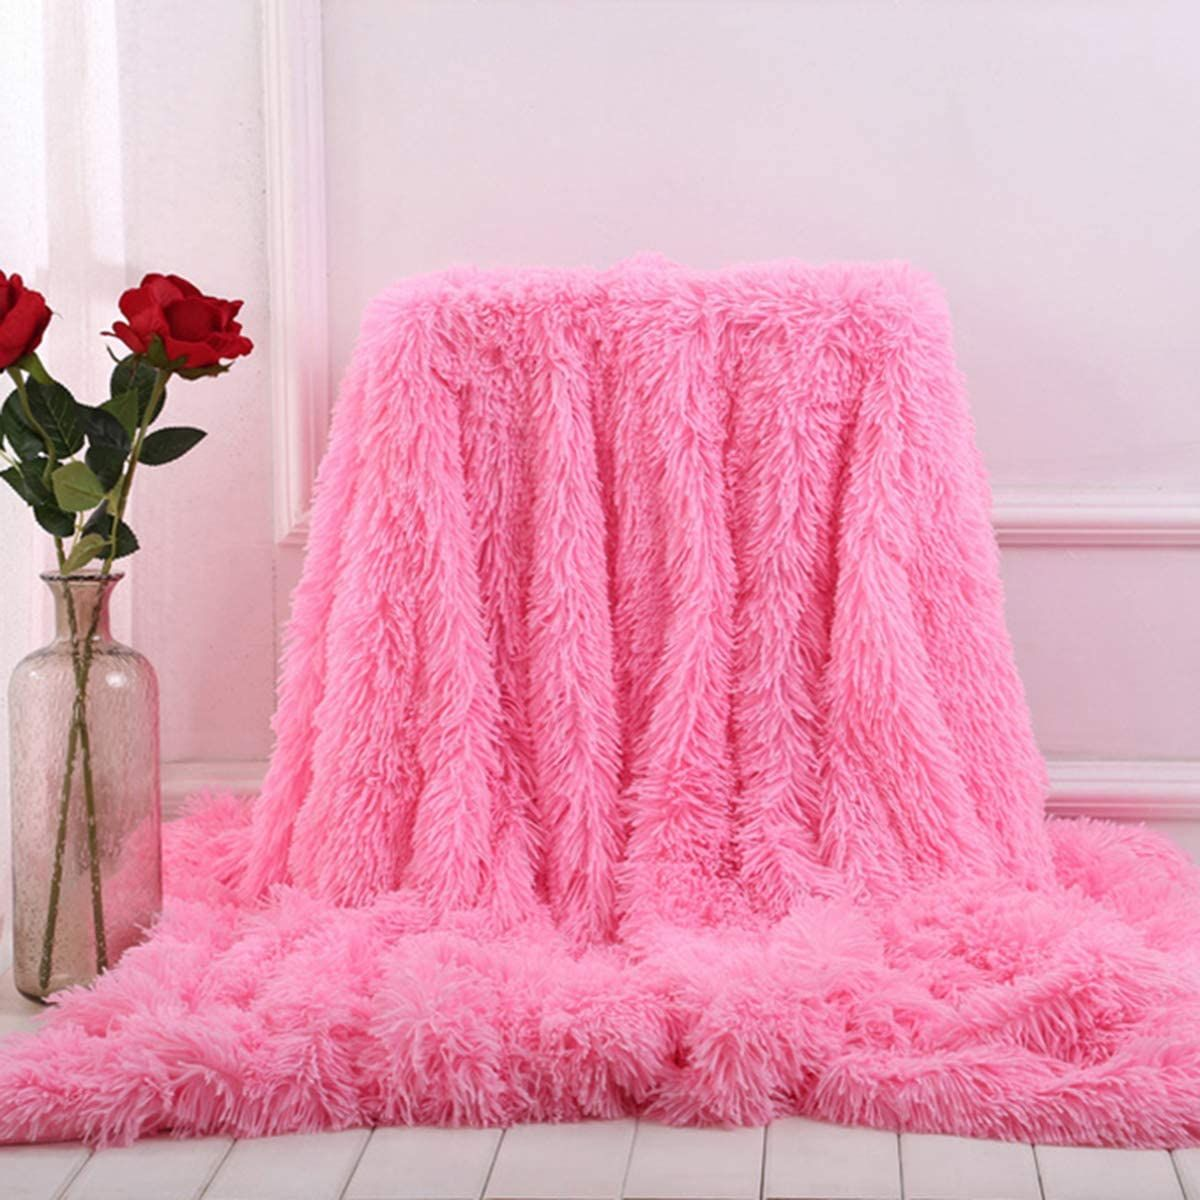 Girls Fluffy Pink Blanket is calling you in 2020 Fluffy